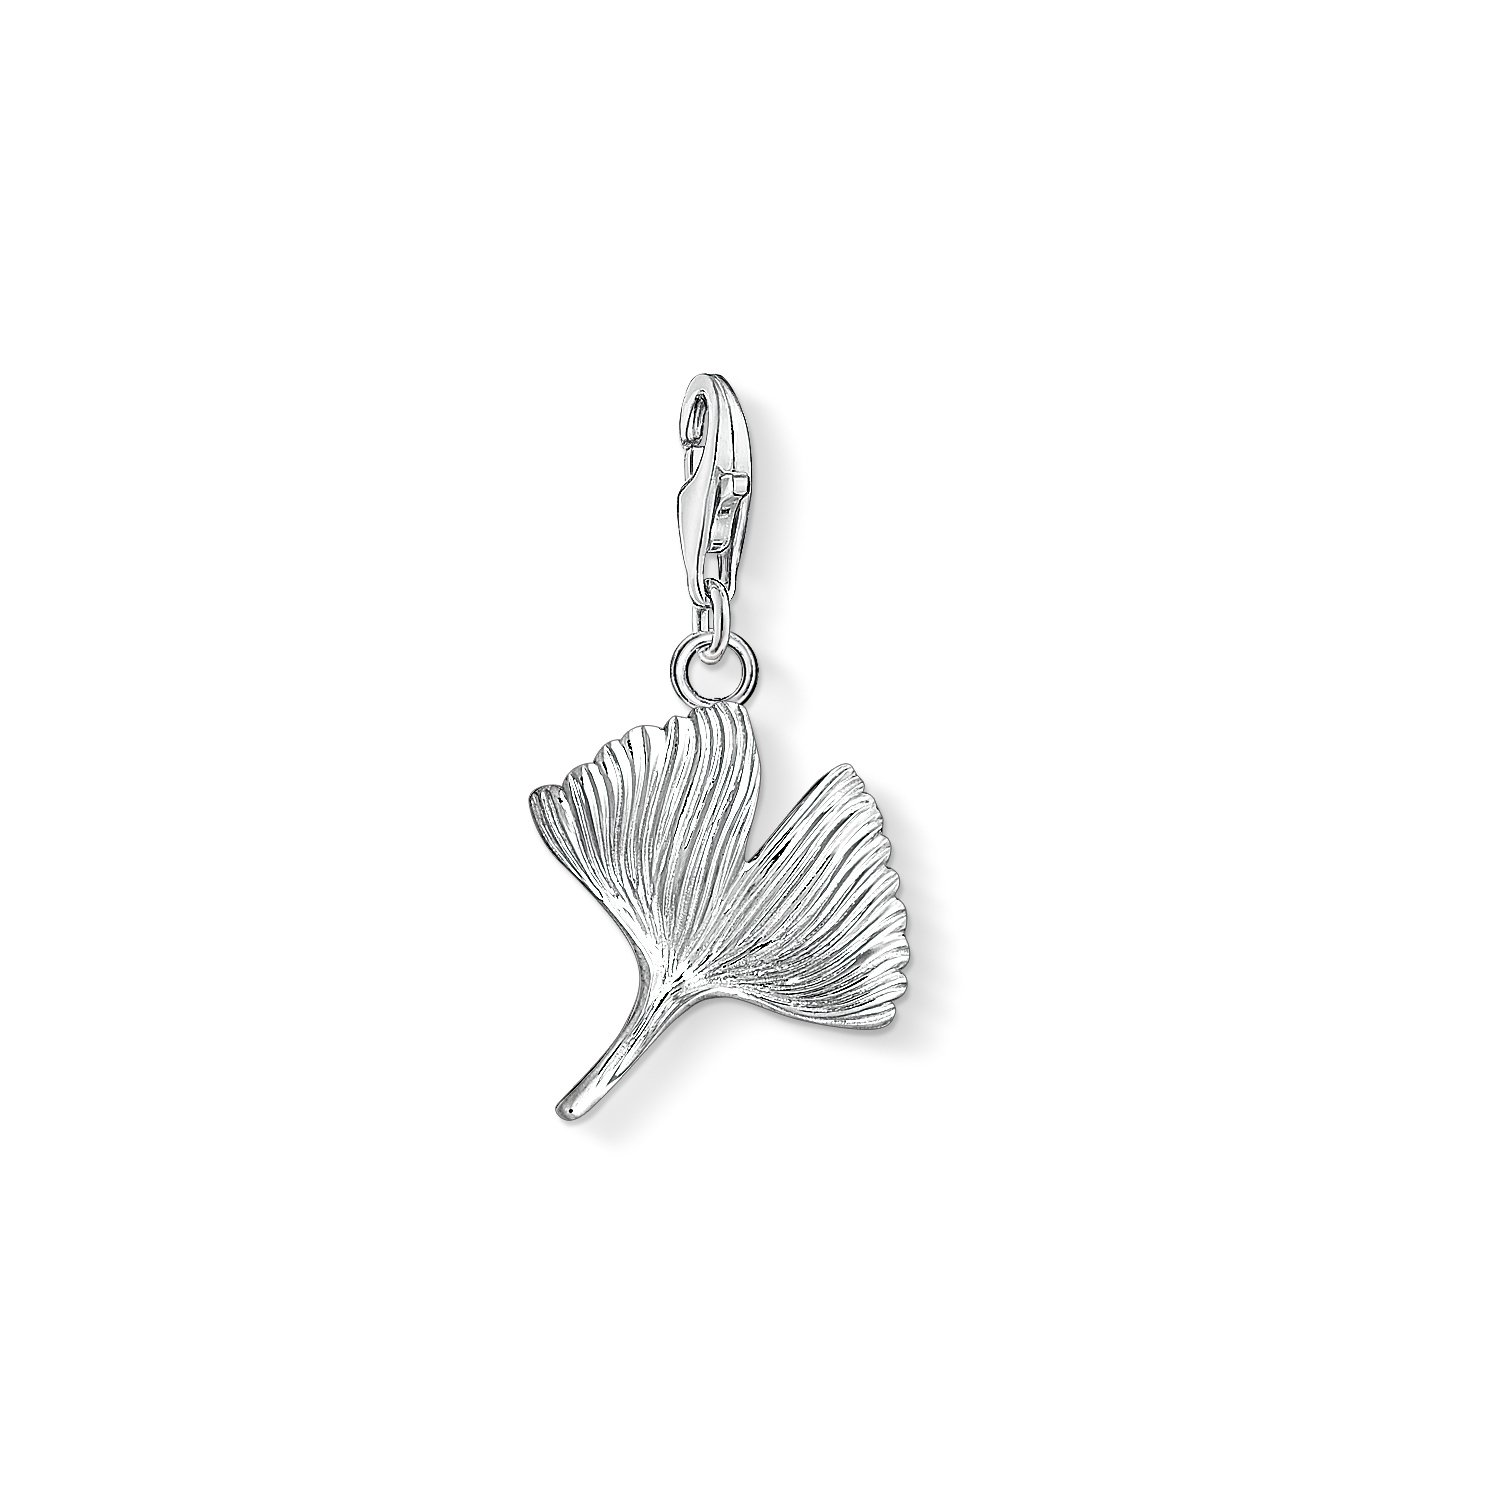 THOMAS SABO Damen-Charm-Anhänger Together Forever Charm Club 925 Sterling Silber 1531-001-21 1529-001-21